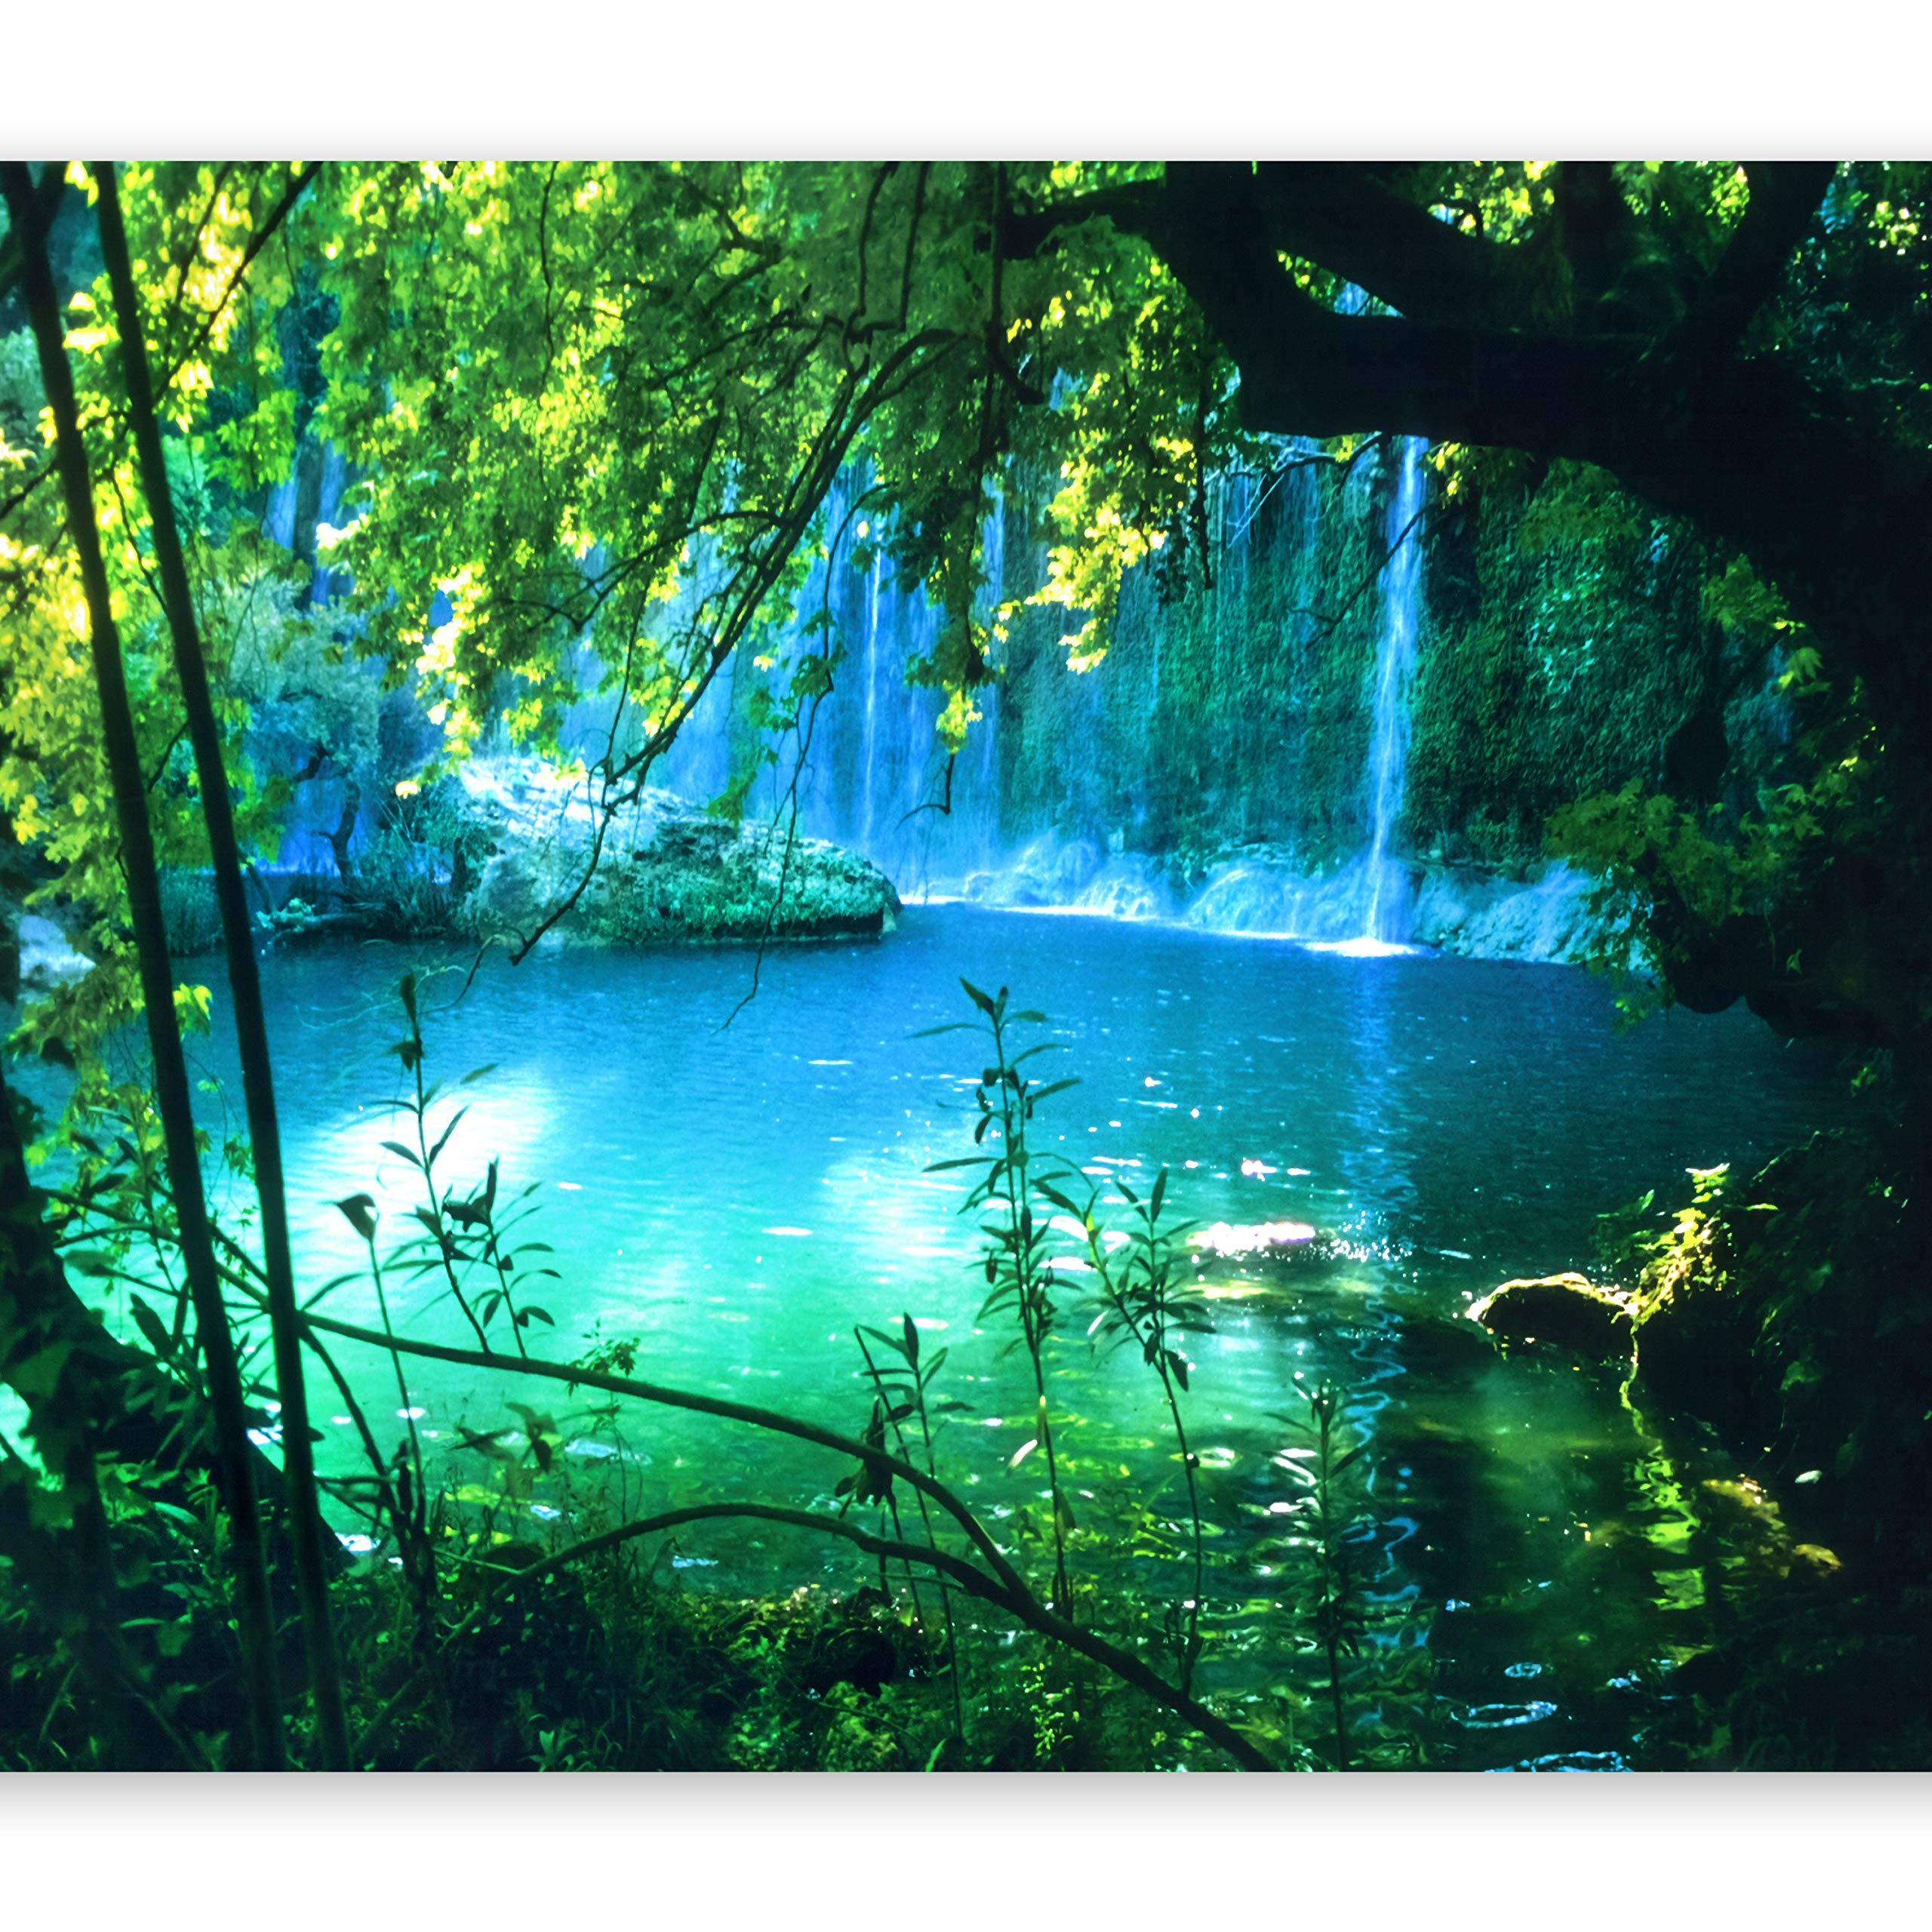 artgeist Photo Wallpaper Waterfall Nature 154''x110'' XXL Peel and Stick Self-Adhesive Foil Wall Mural Removable Sticker Premium Print Picture Image Design Home Decor c-B-0132-a-a